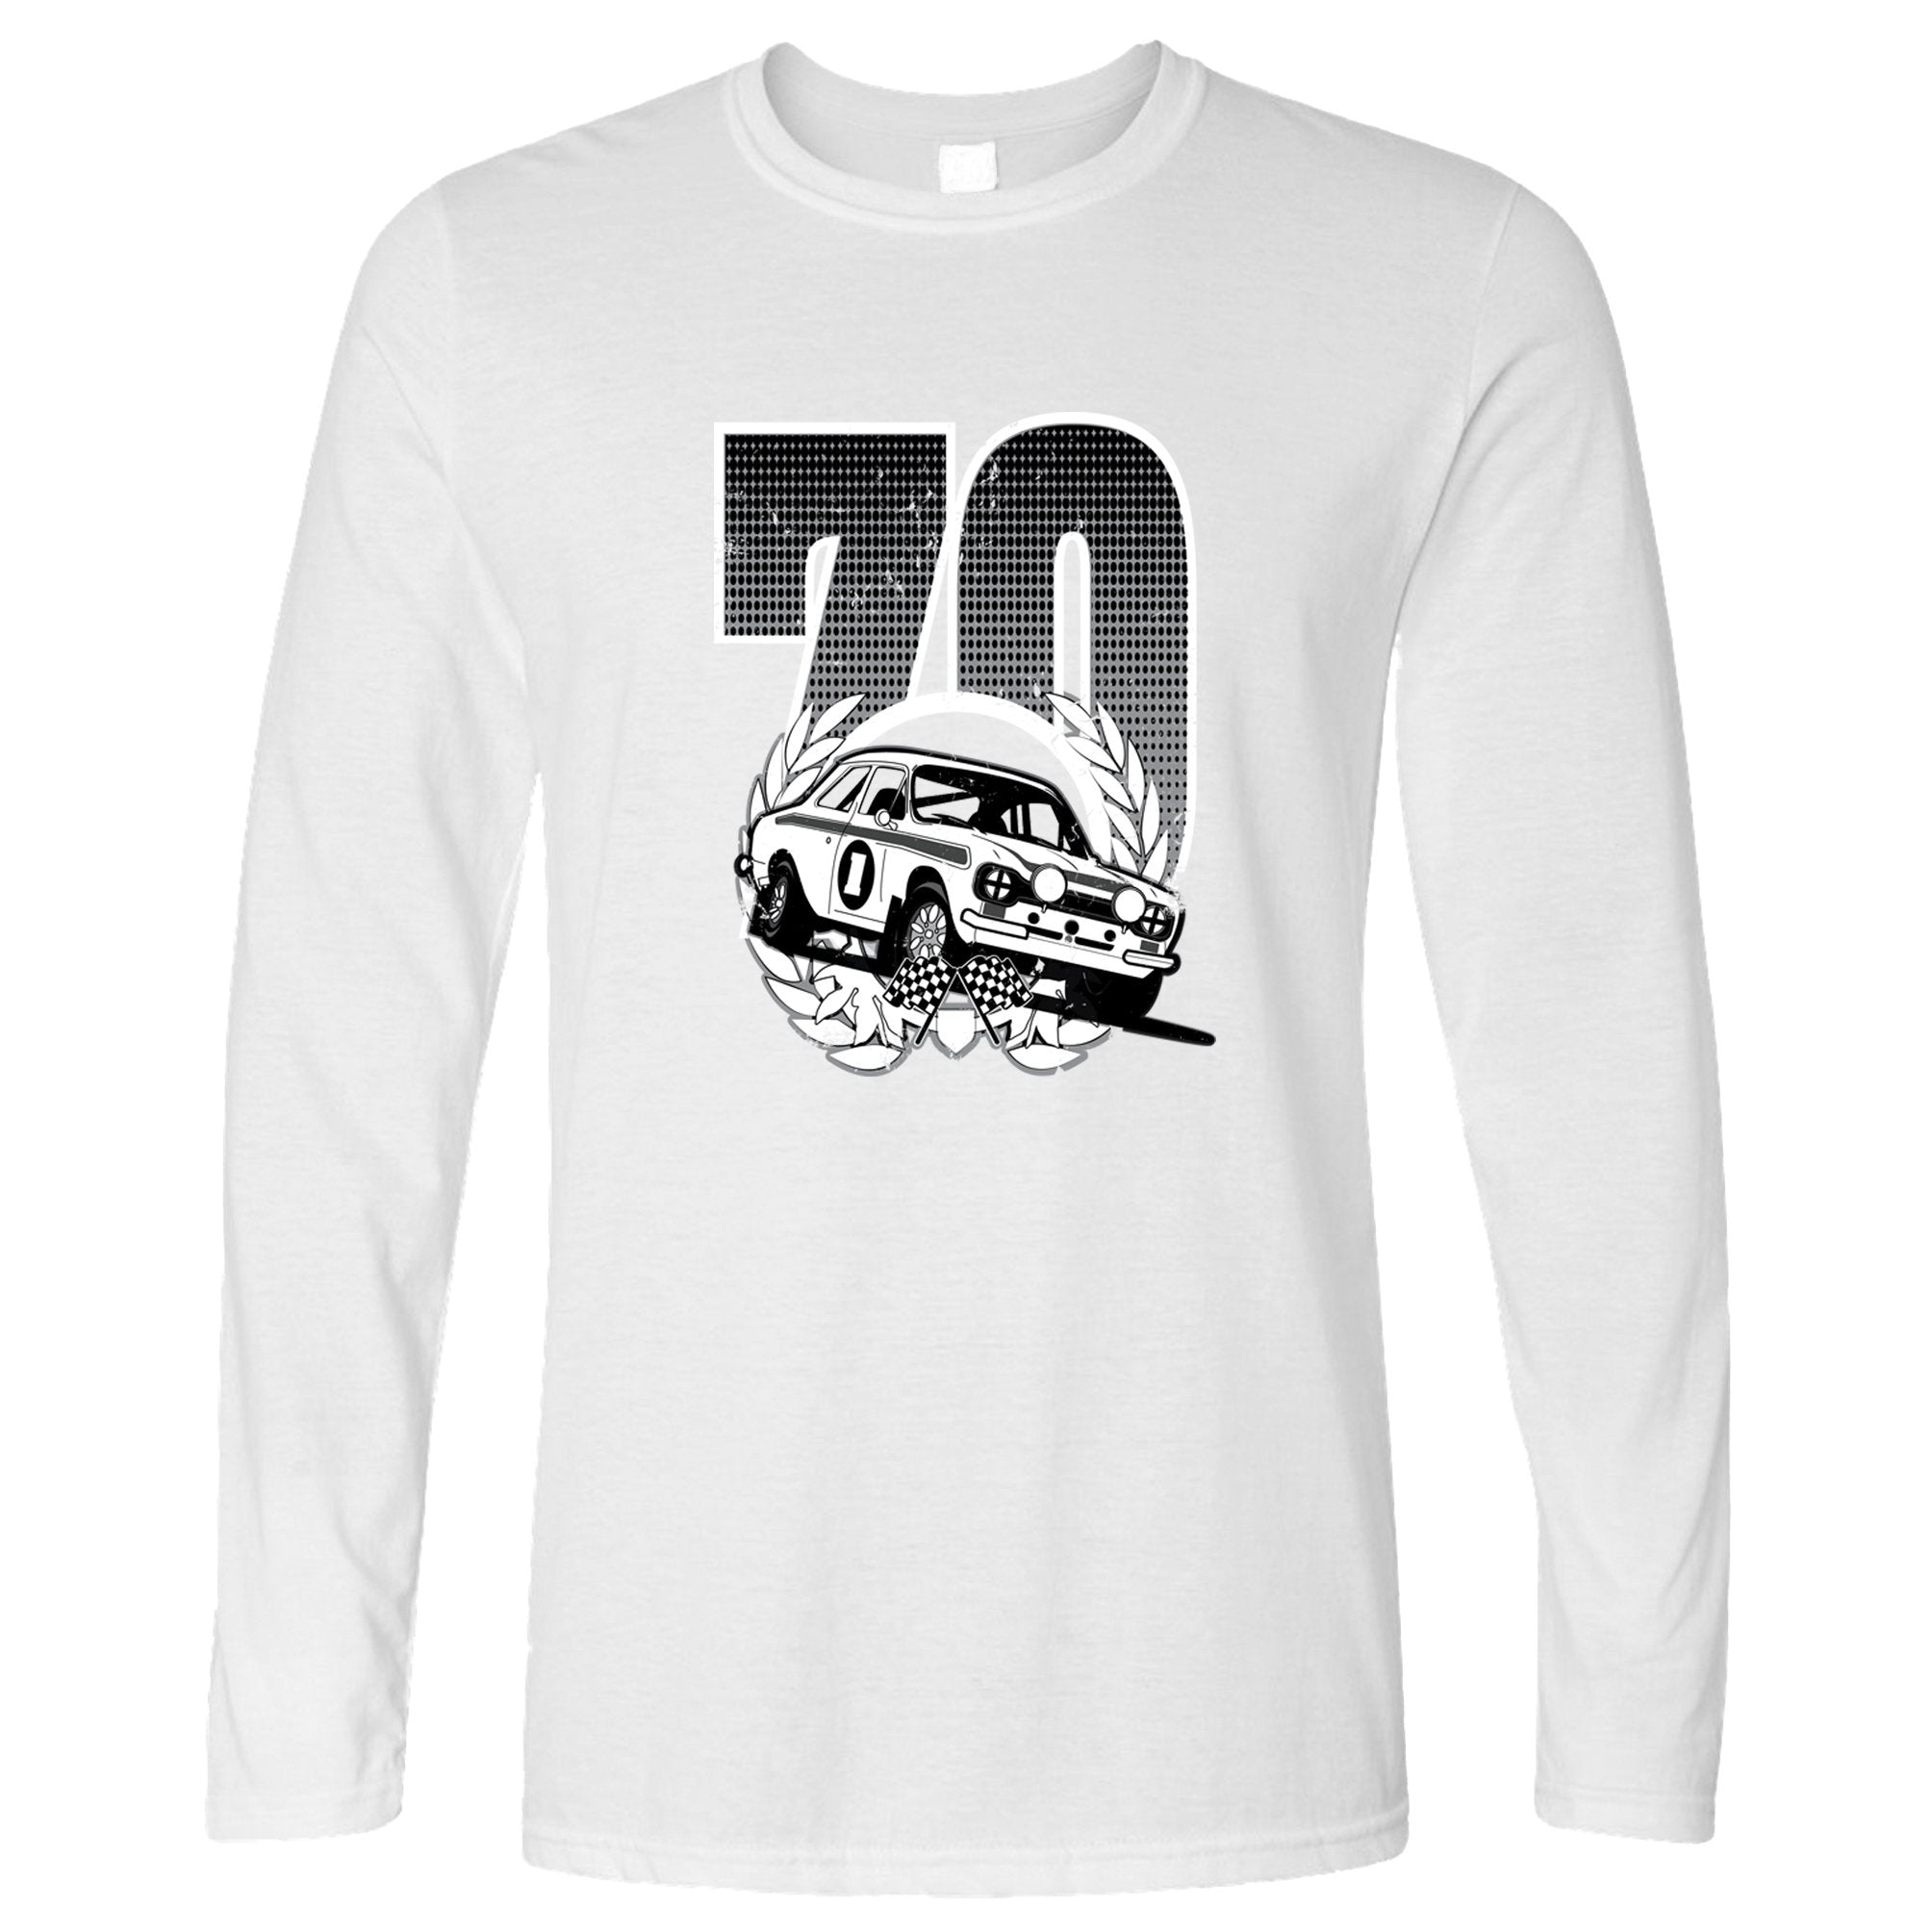 Racing Long Sleeve Classic Rally Car Retro 70 T-Shirt